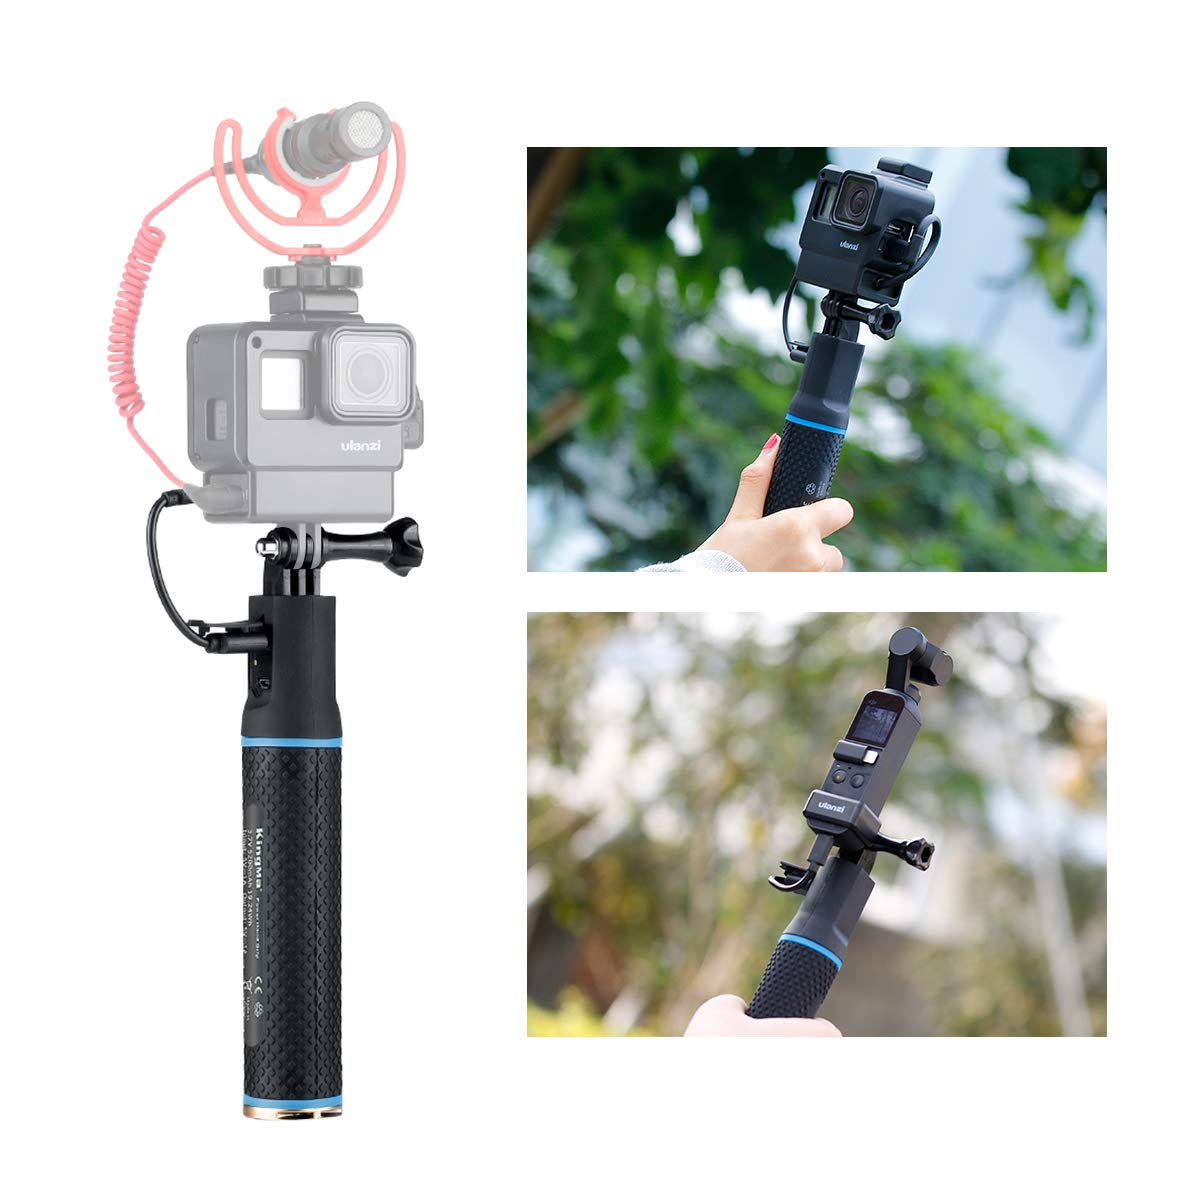 Rechargeable Power Hand Grip Monopod with OSMO Pocket Adapter and Phone Mount for DJI OSMO Action Pocket Gimbal Gopro 7 6 5 Vlog Case iPhone Samsung OnePlus 7 Pro Vlogging Power Bank Handle Rig Tripod